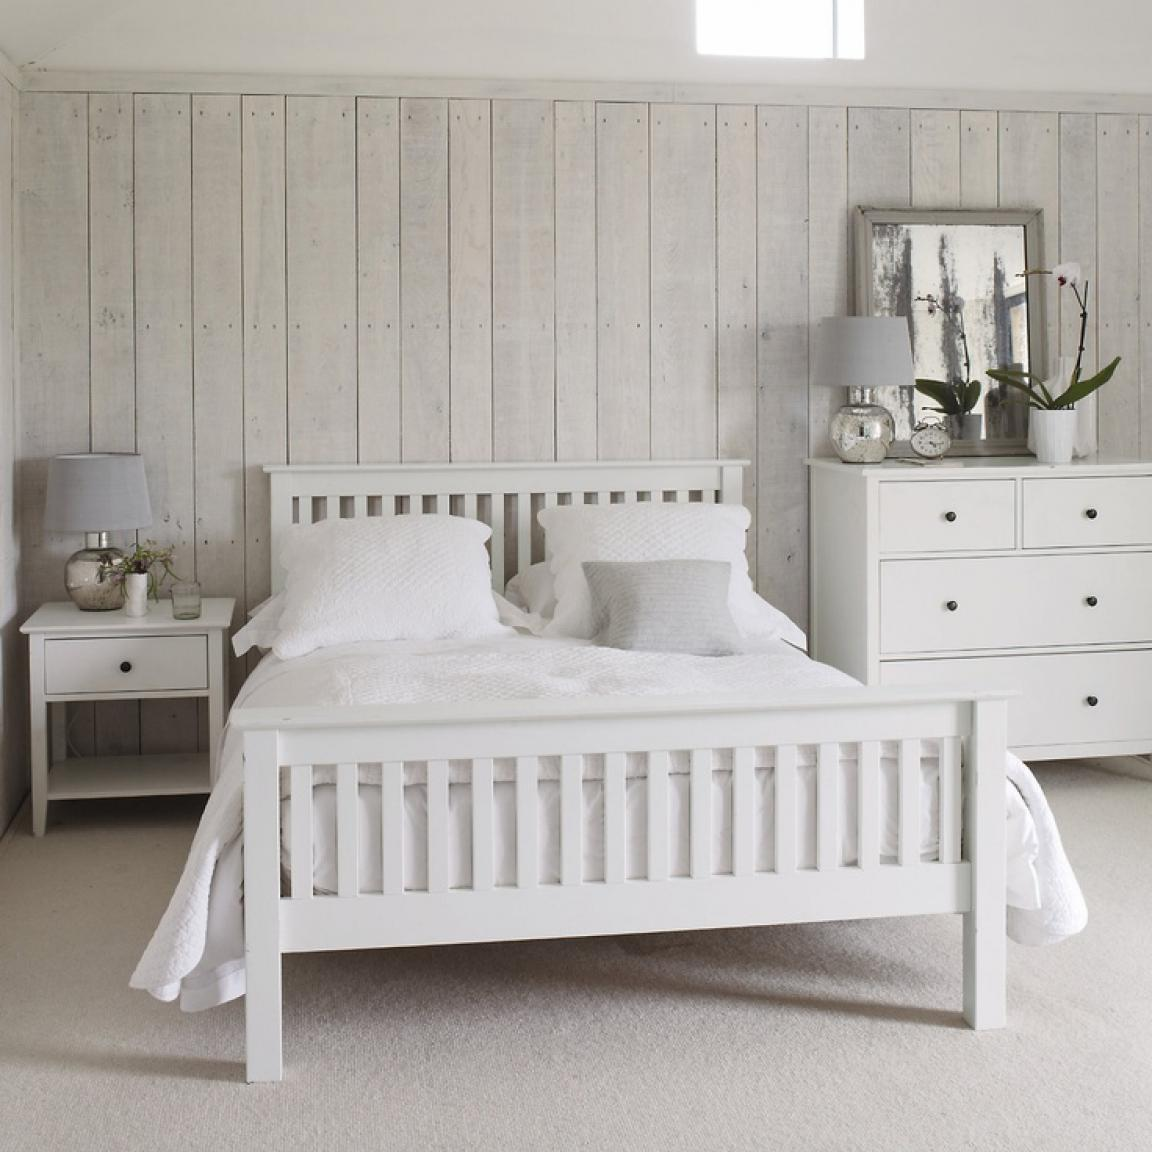 Gloss White Bedroom Furniture Is It Any Good